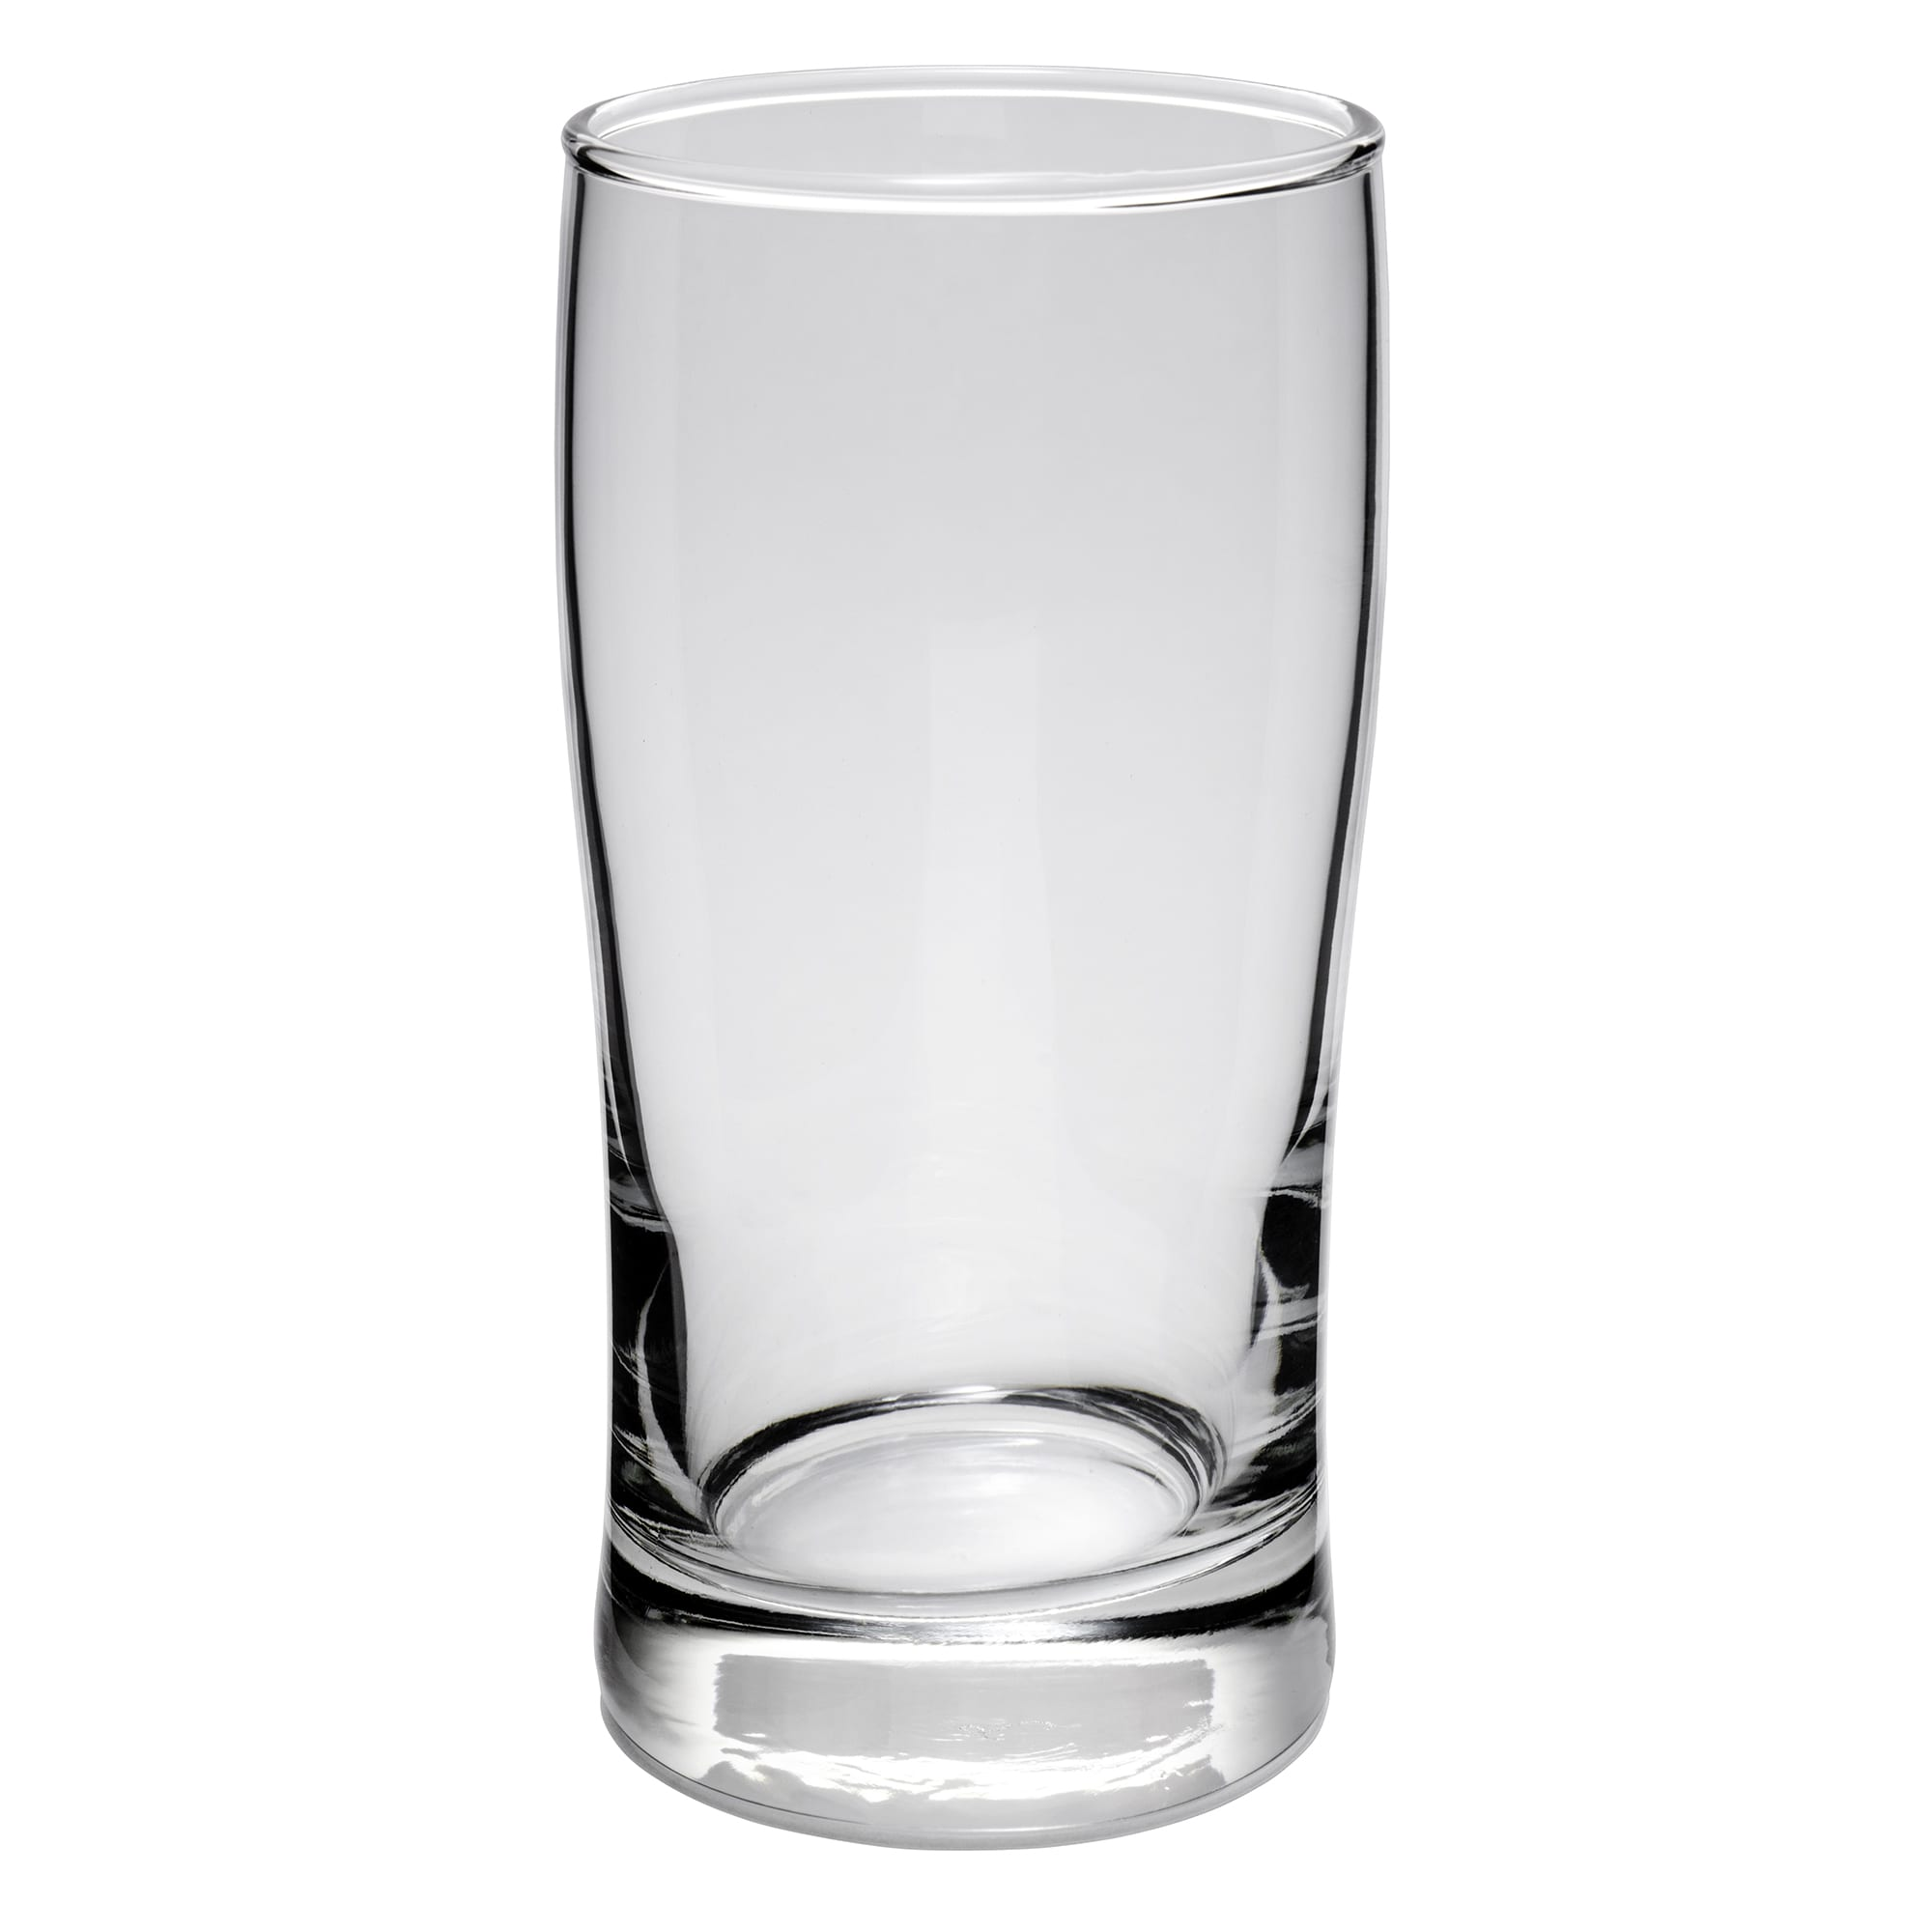 Libbey 259 12.25 oz Esquire Collins Glass - Safedge Rim Guarantee